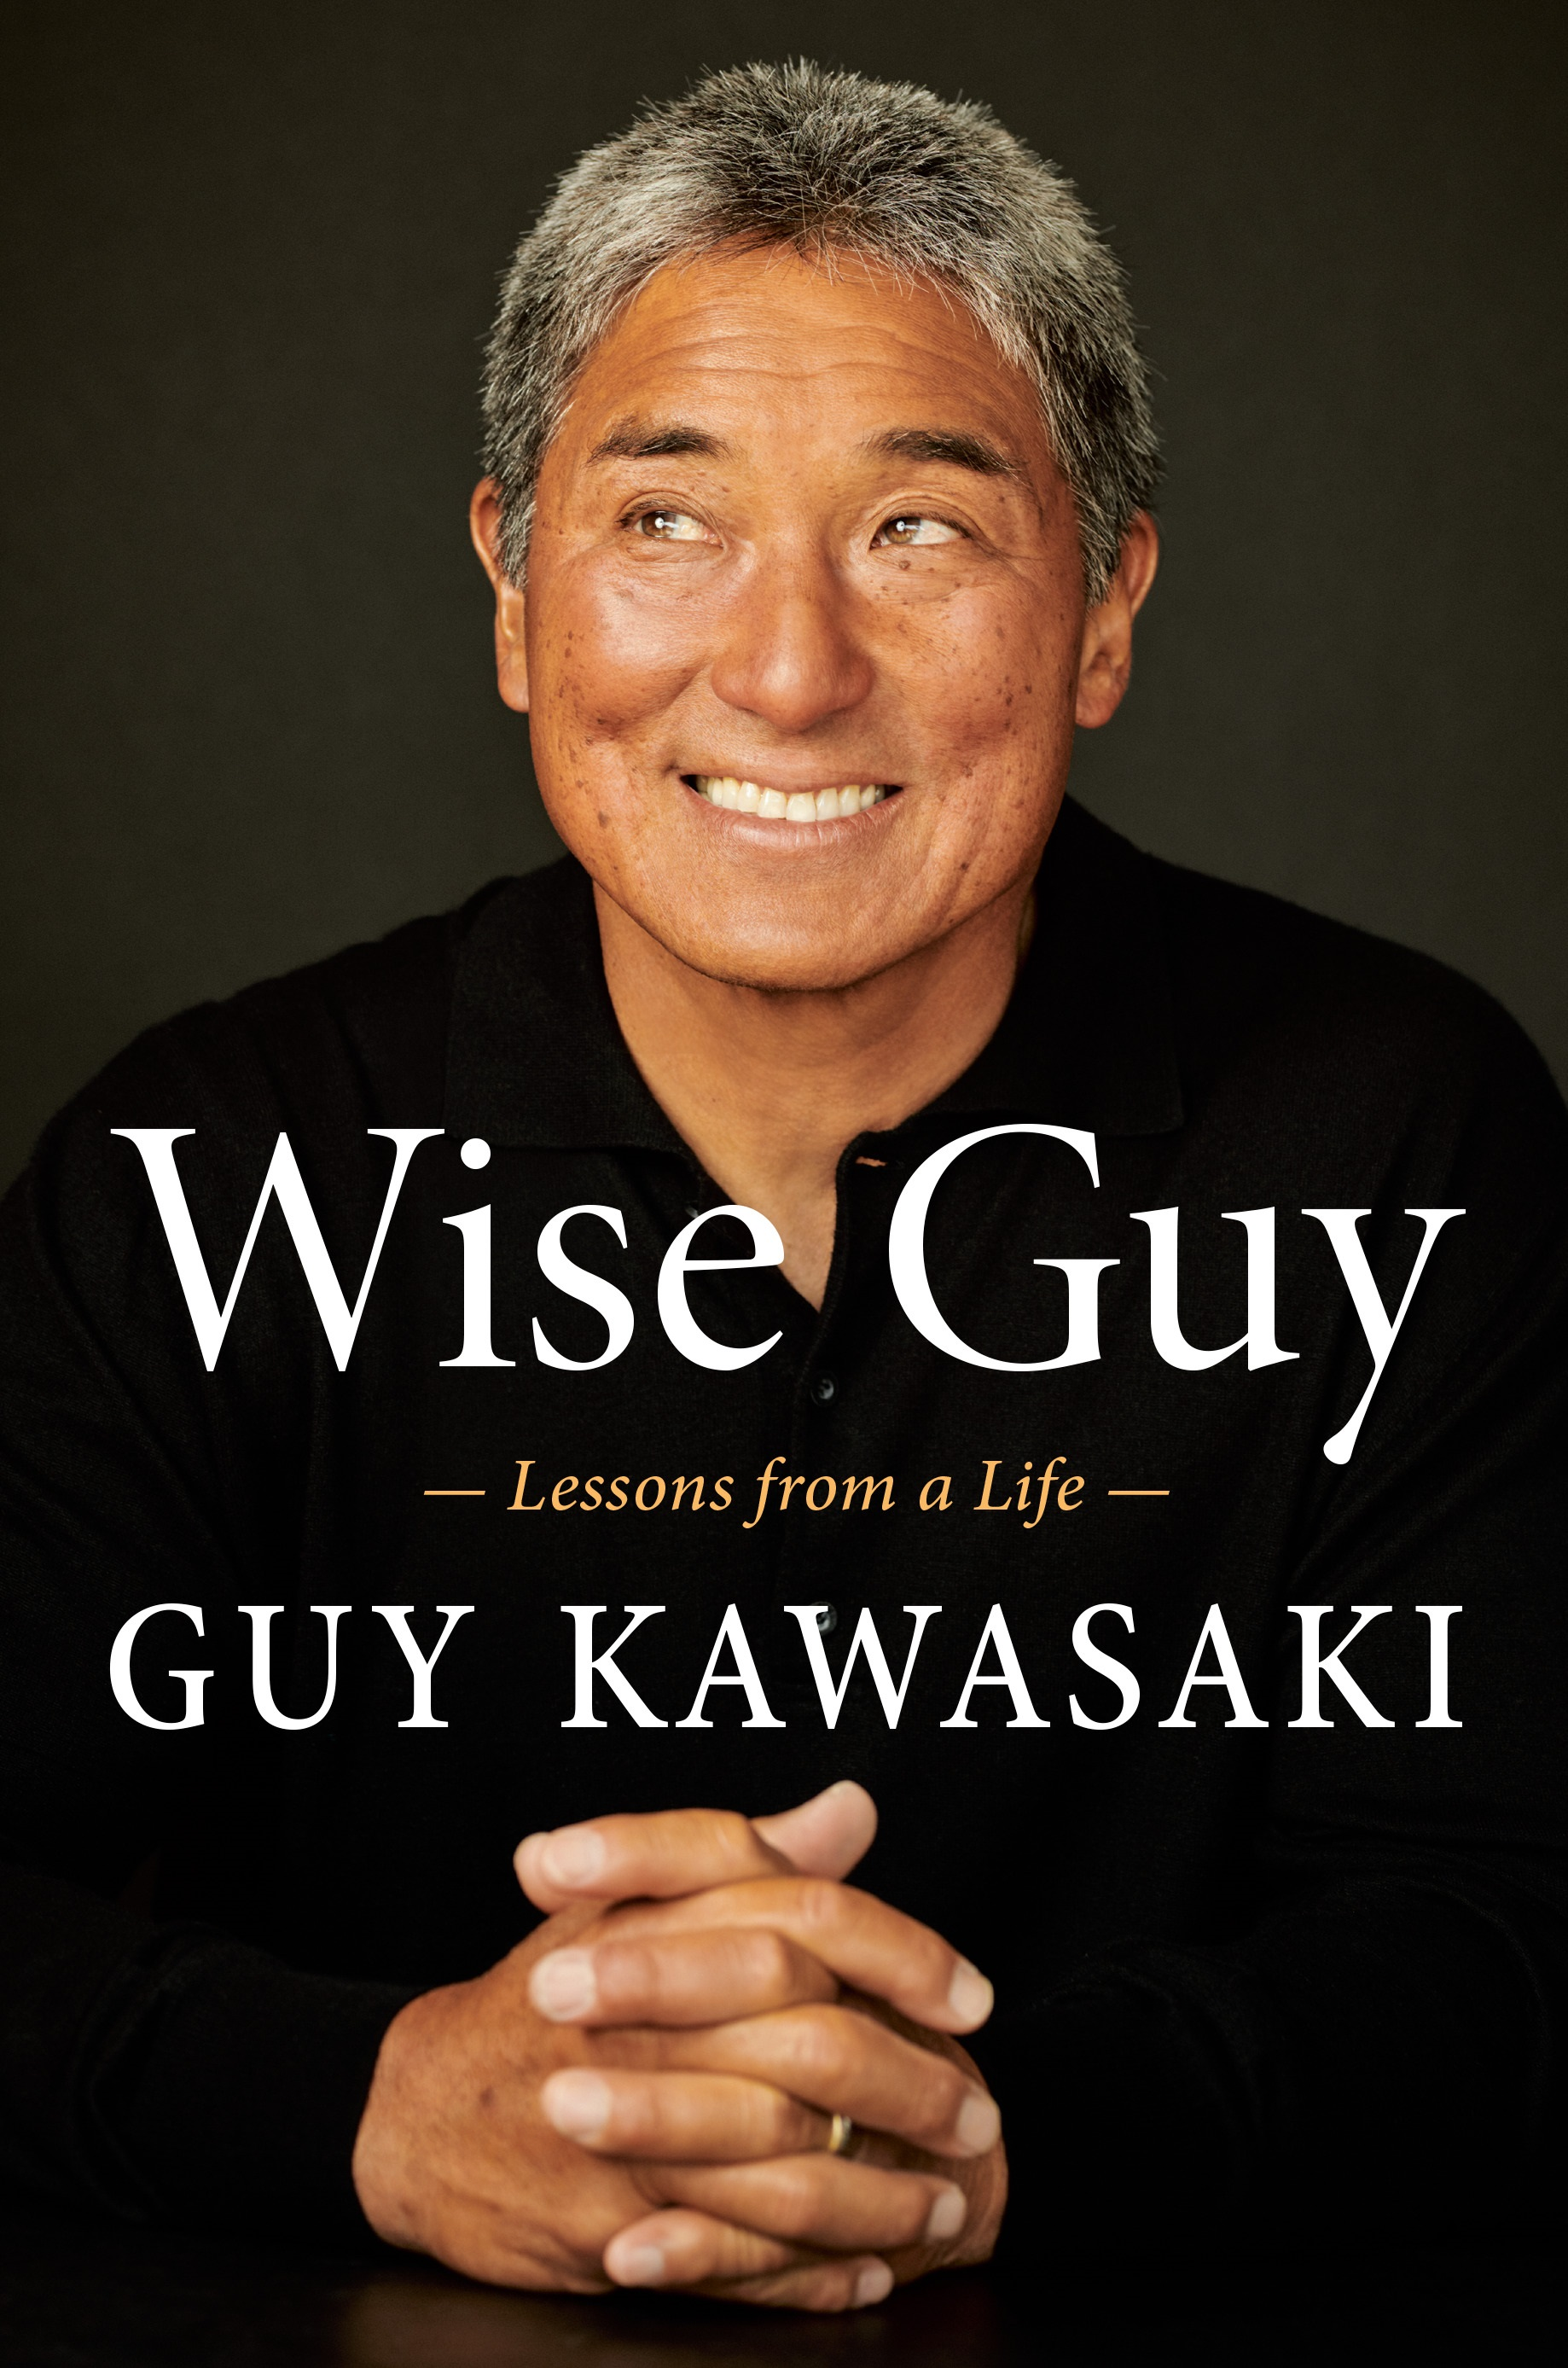 My 'Wise Guy' Story